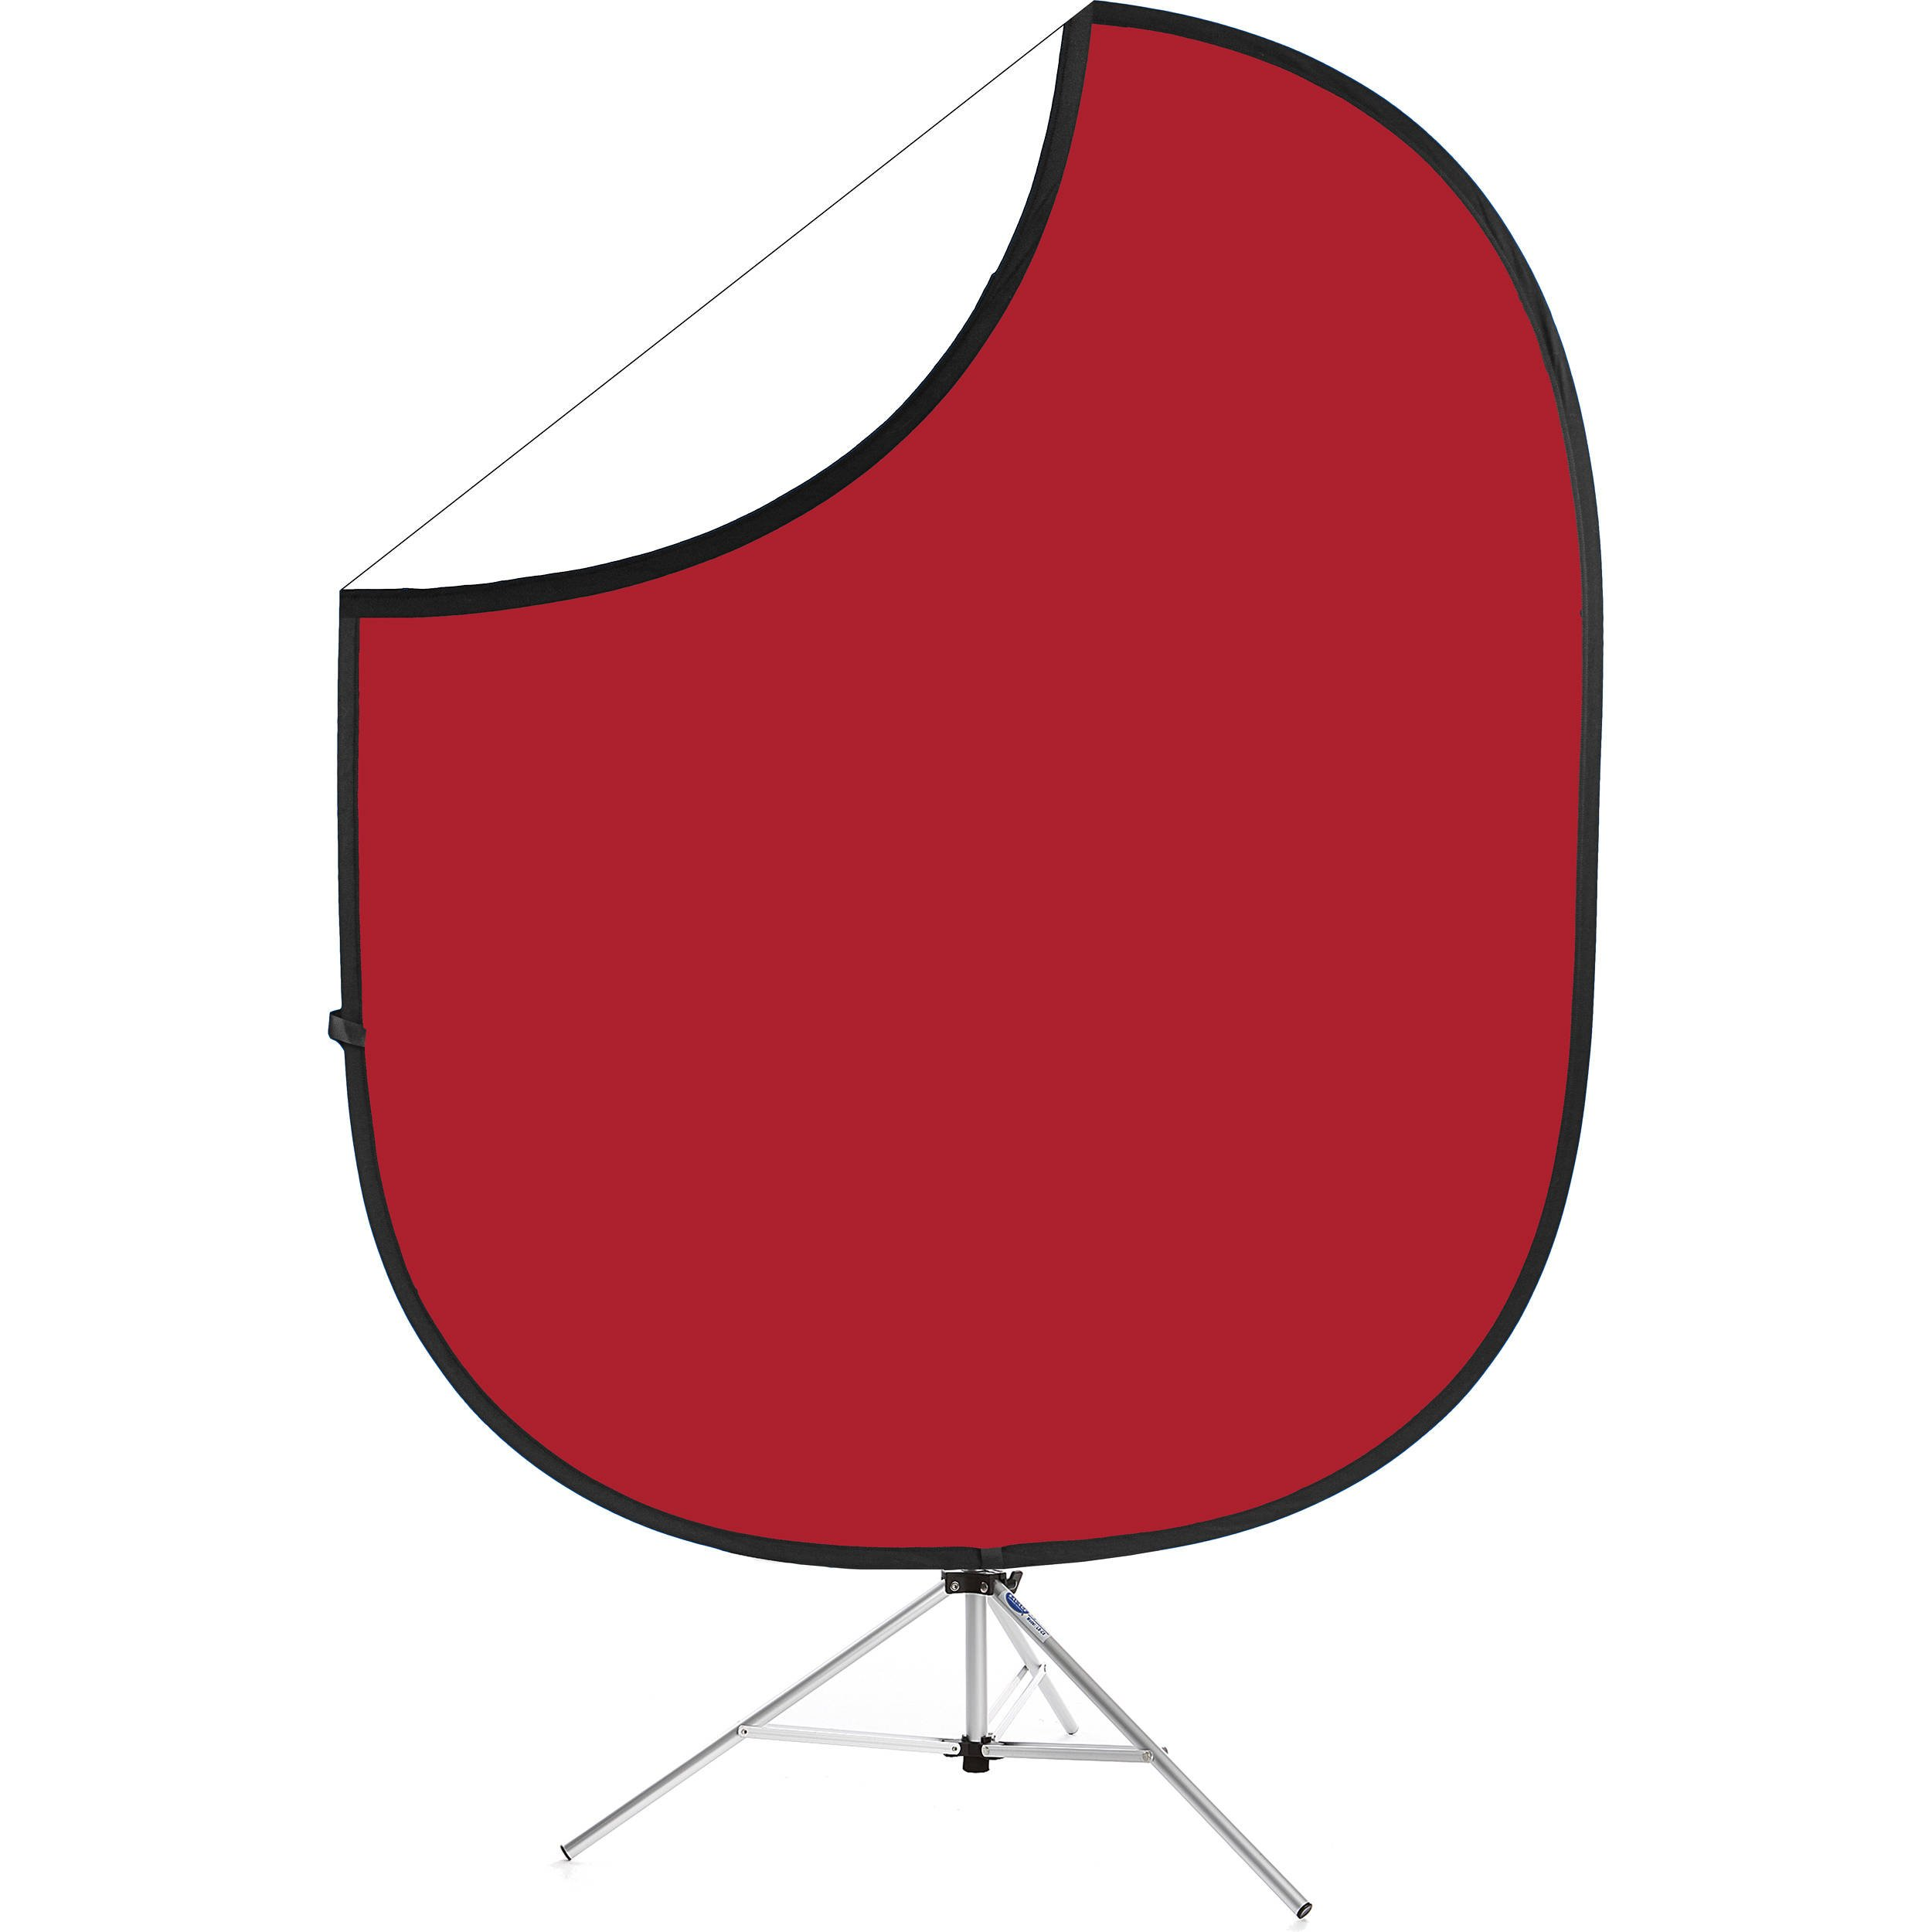 Savage Collapsible Stand Kit 5x6 ft - Matador Red/White CB160-KIT by Savage